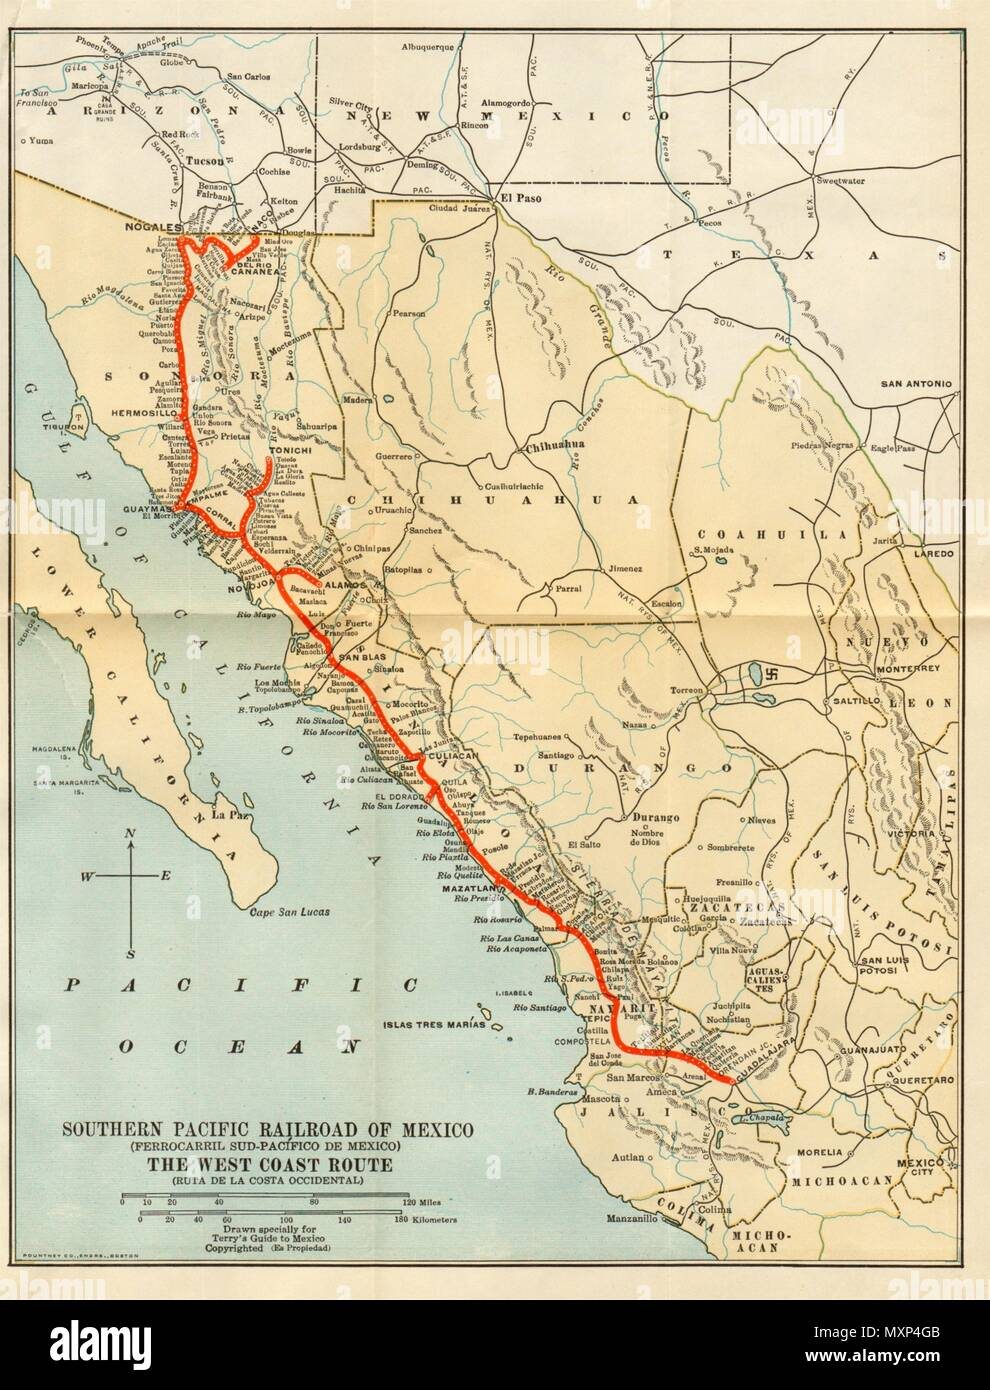 Southern Pacific Railroad / Ferrocarril Sud-Pacifico de ... on world map with mexico, map mexican colors, location of ixtapa in mexico, us and mexico, map from mexico, madero mexico, china and mexico, map to mexico, map of mexico, carretero mexico, usa canada mexico, 7 states of mexico, map venezuela flag, google maps mexico, us state that borders mexico, geo mexico, canada and mexico, map from cancun to belize, map with title,